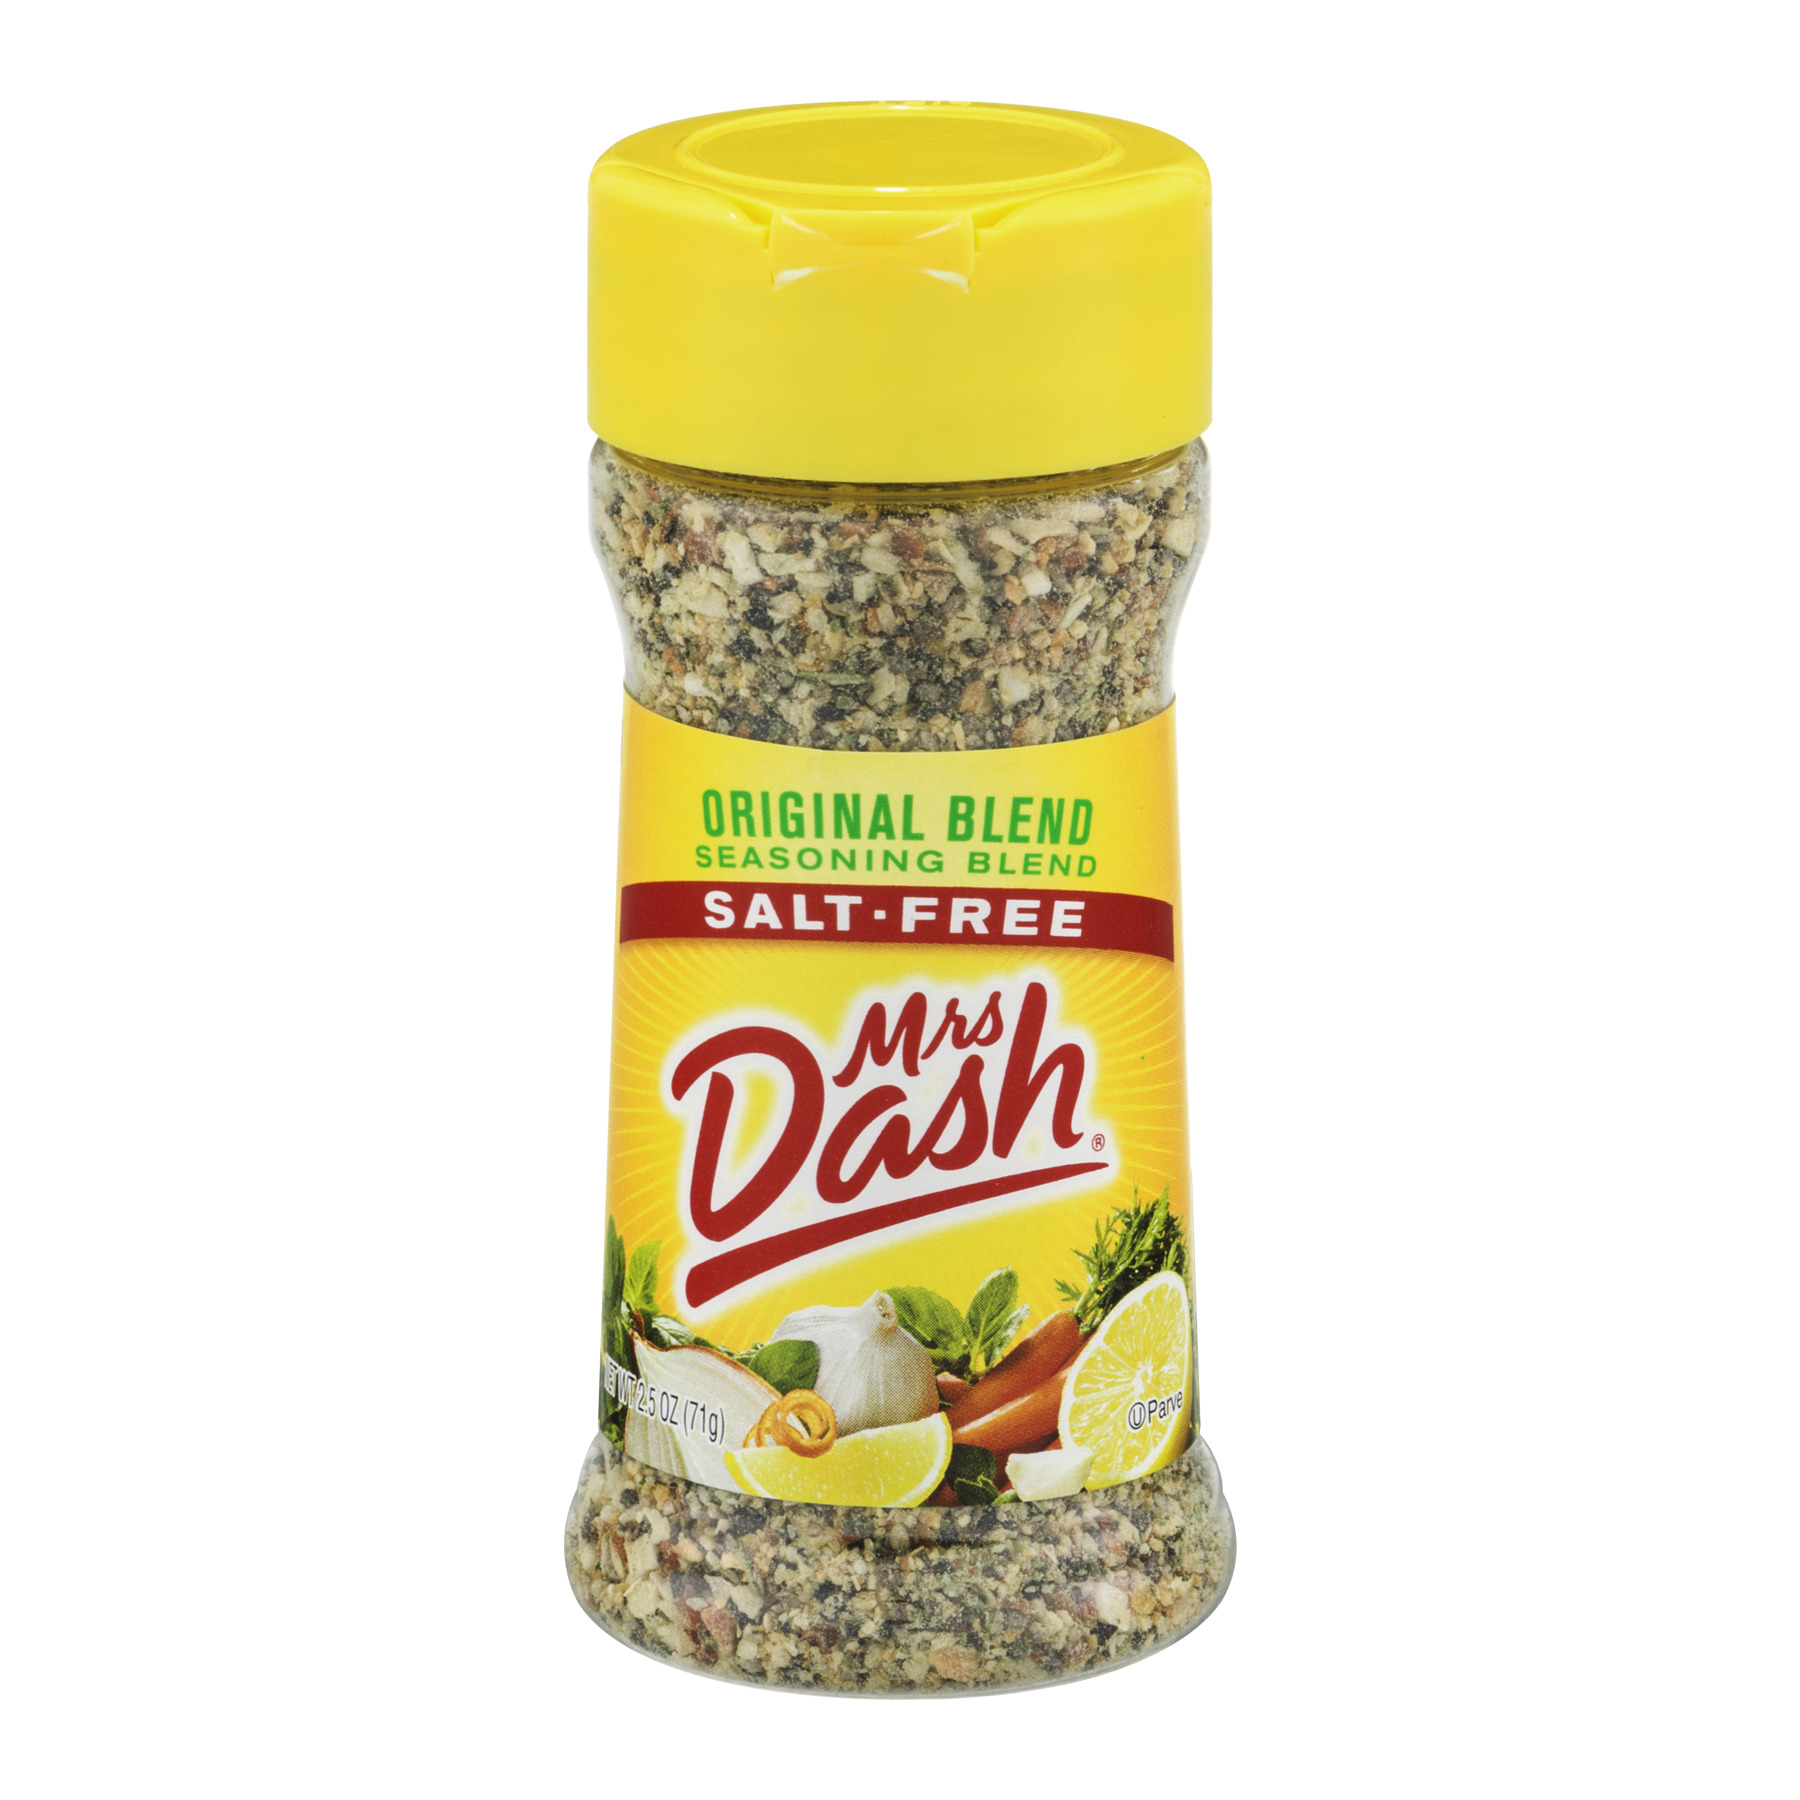 (3 Pack) Mrs. Dash Original Blend Salt-Free Seasoning Blend 2.5 Oz